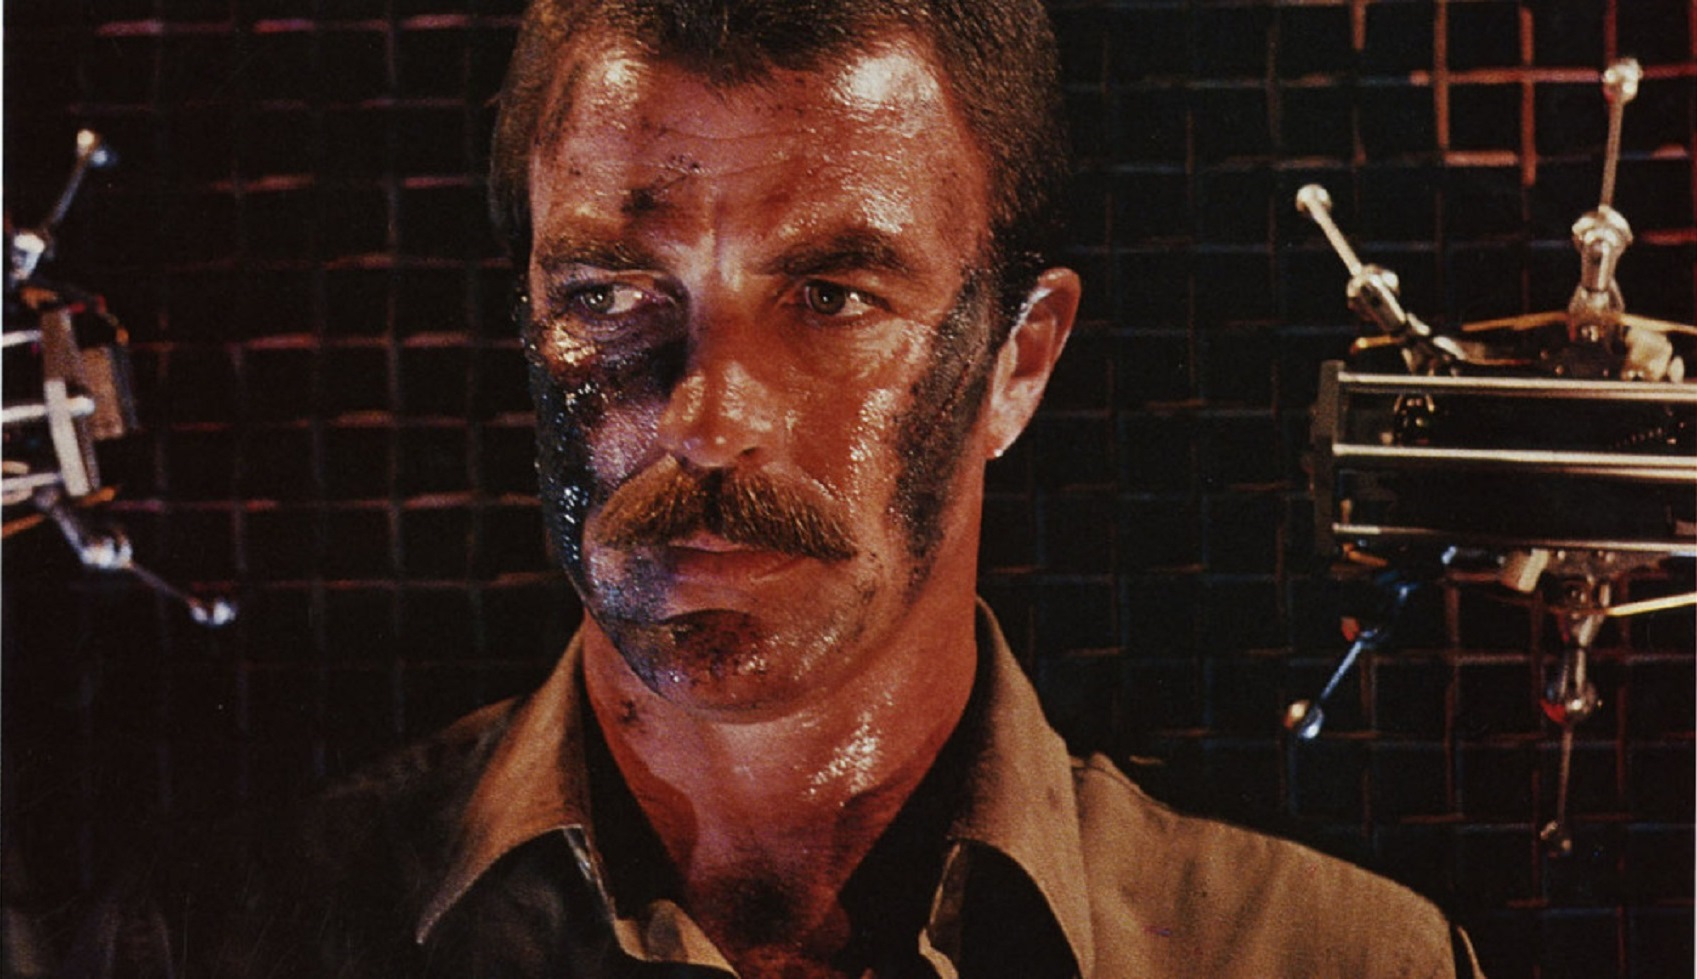 Tom Selleck surrounded by killer robots in Runaway (1984)